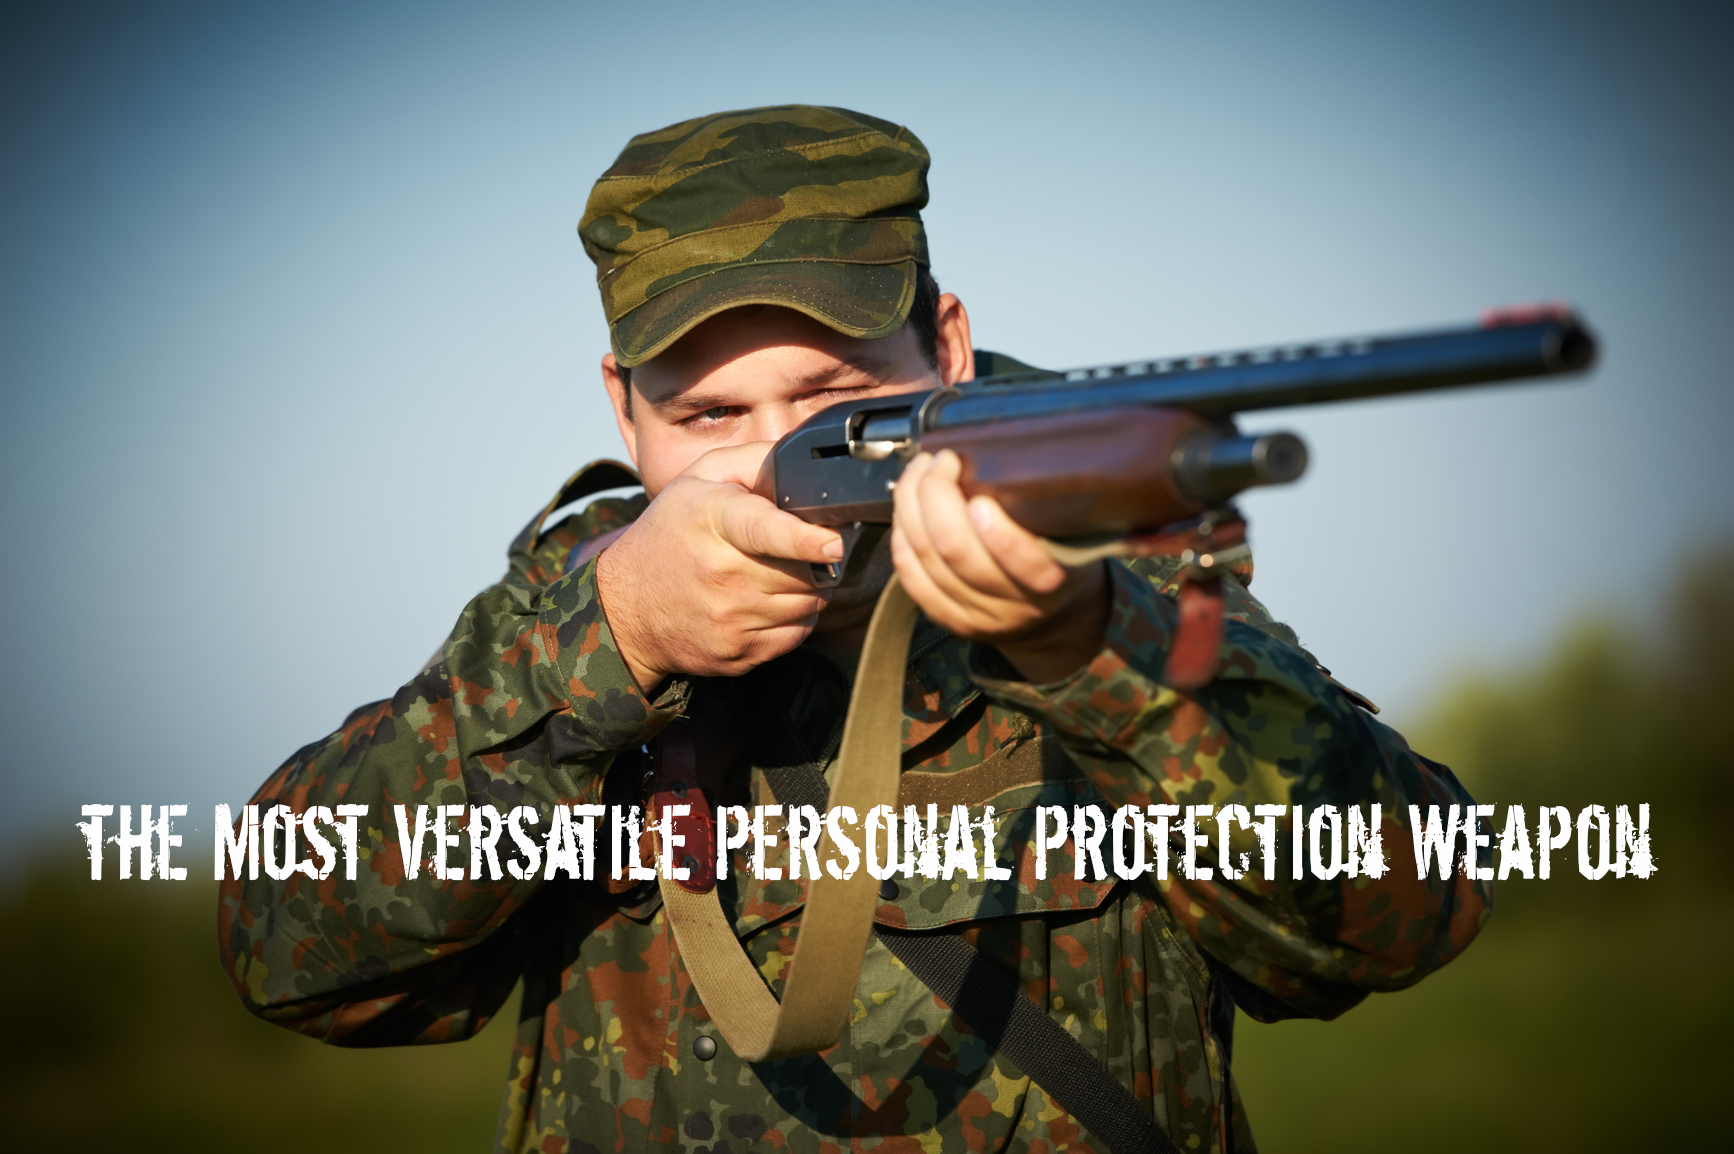 What is the Most Versatile Personal Protection Weapon I can have?